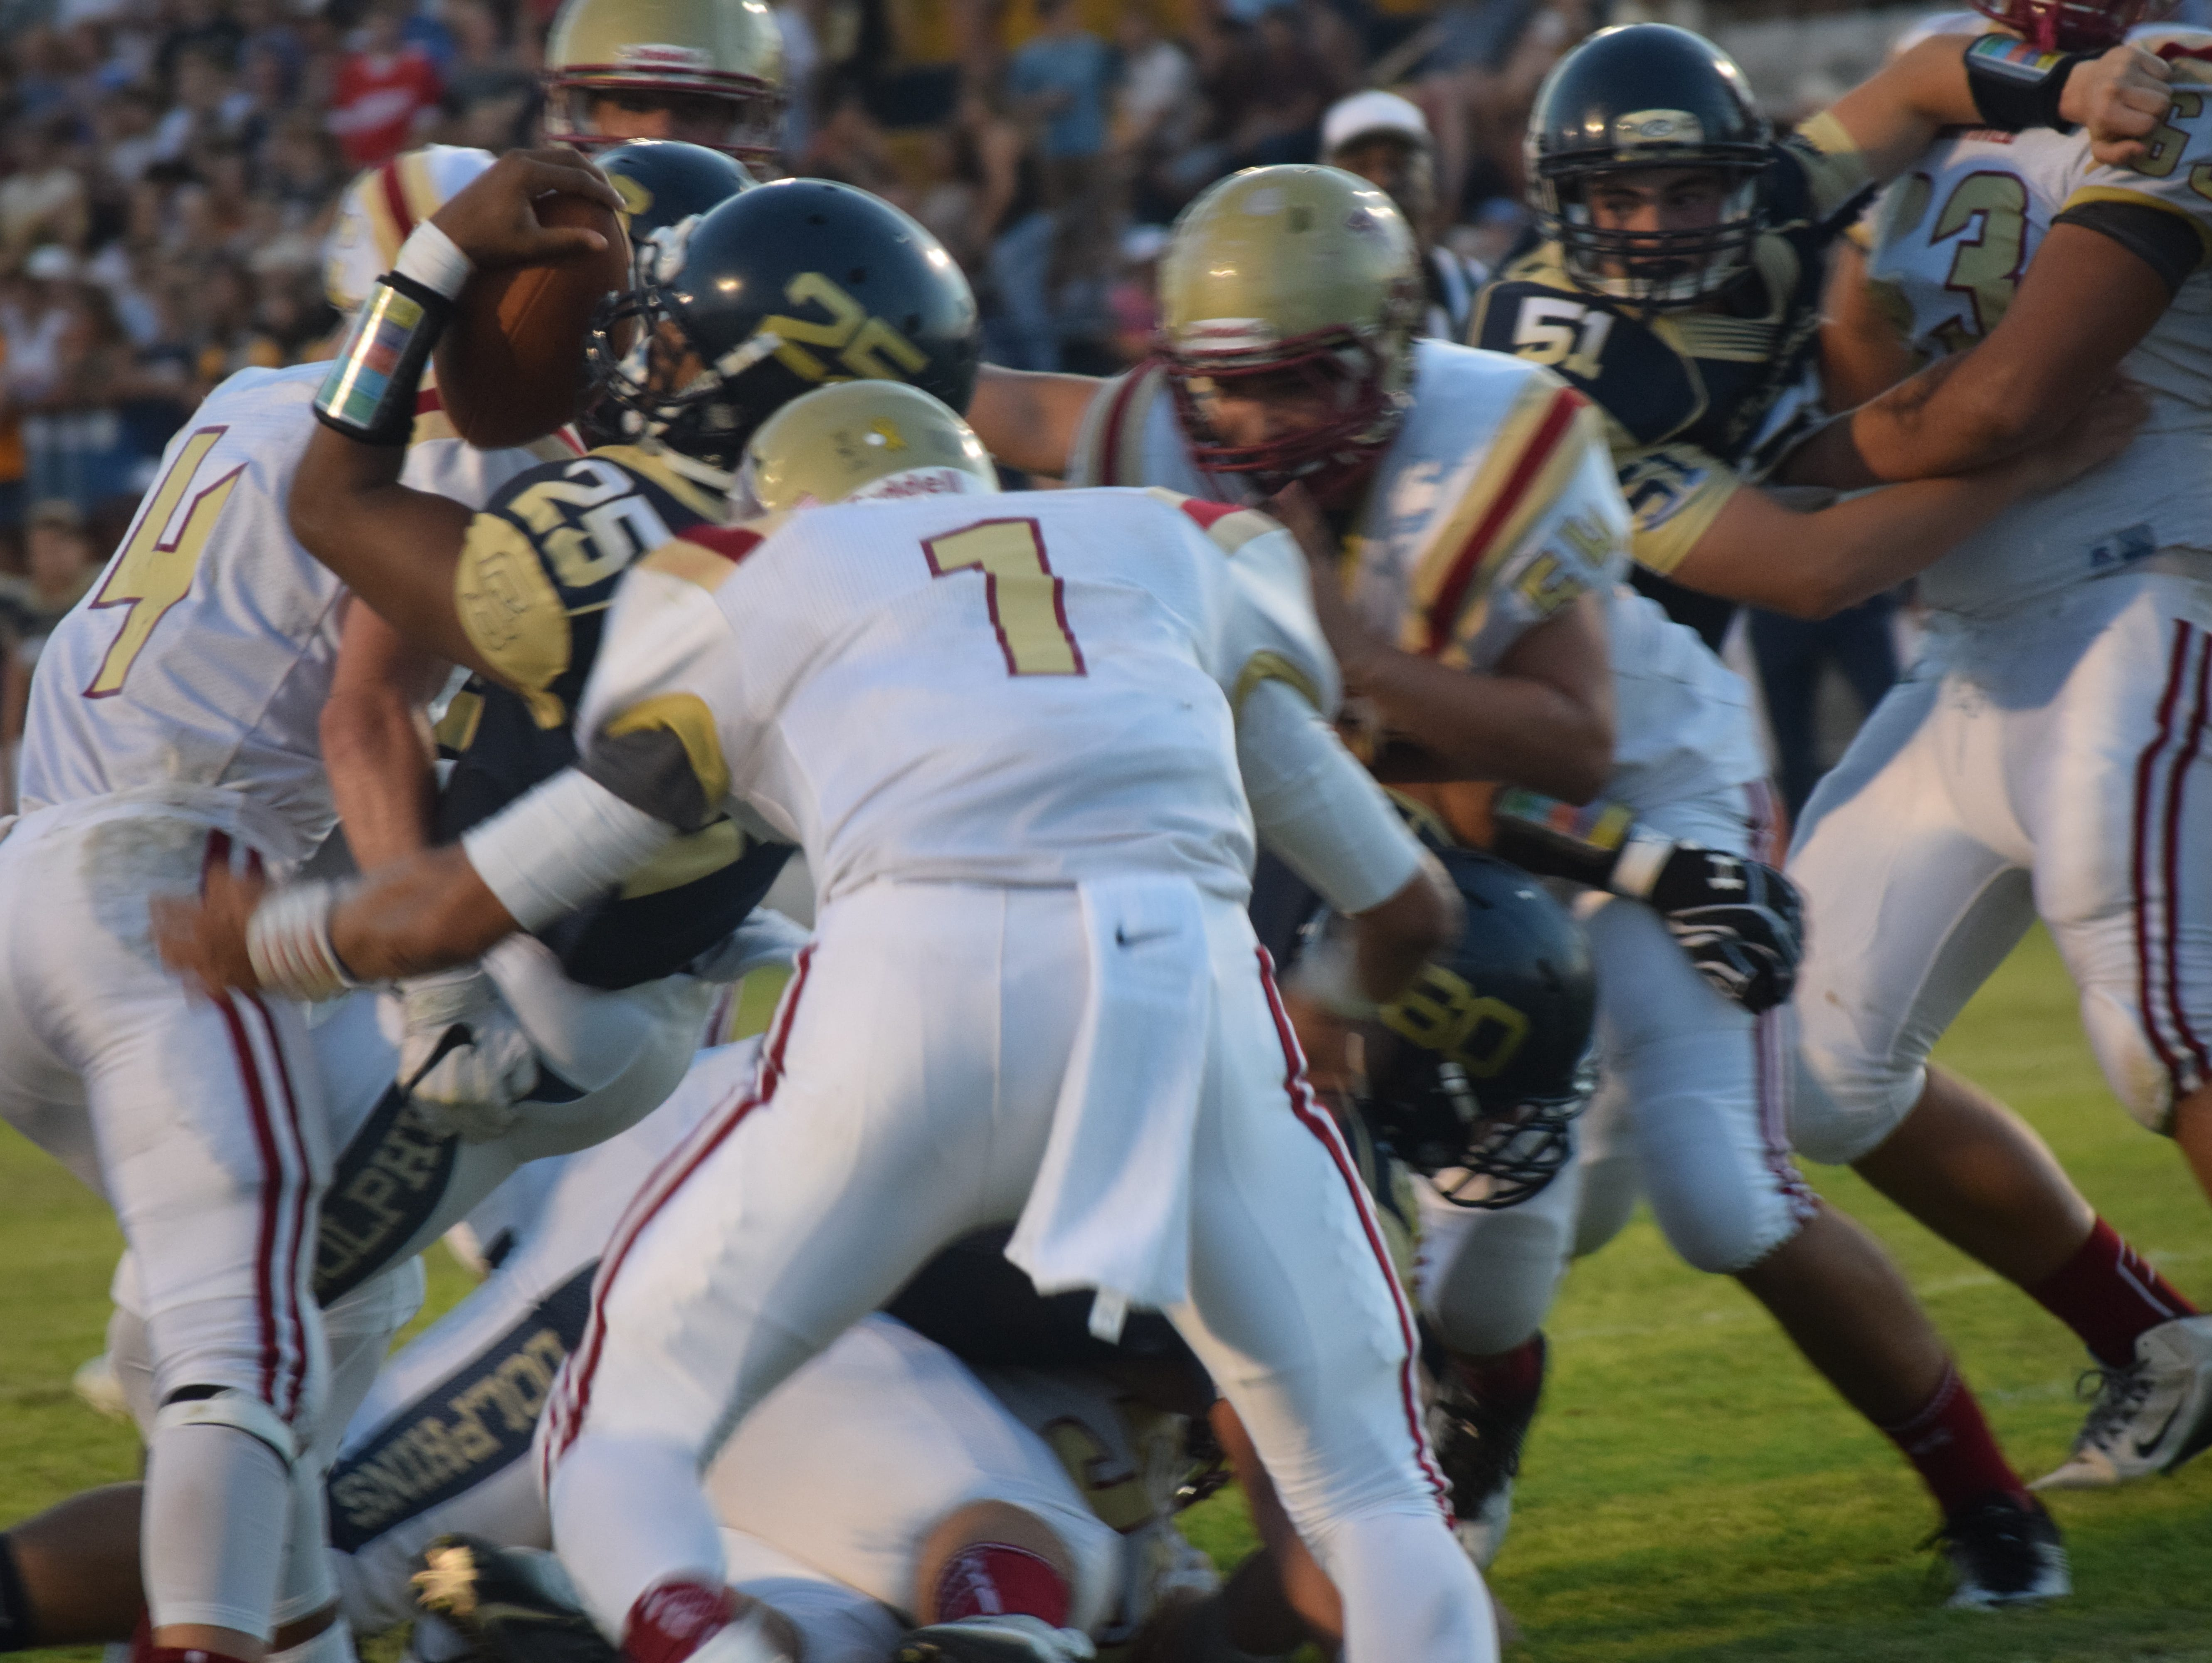 Gulf Breeze sophomore running back Carl Taylor (25) puts the ball over the plane of goal line to score the Dolphins first touchdown Friday night as Northview's Luke Ward closes in.